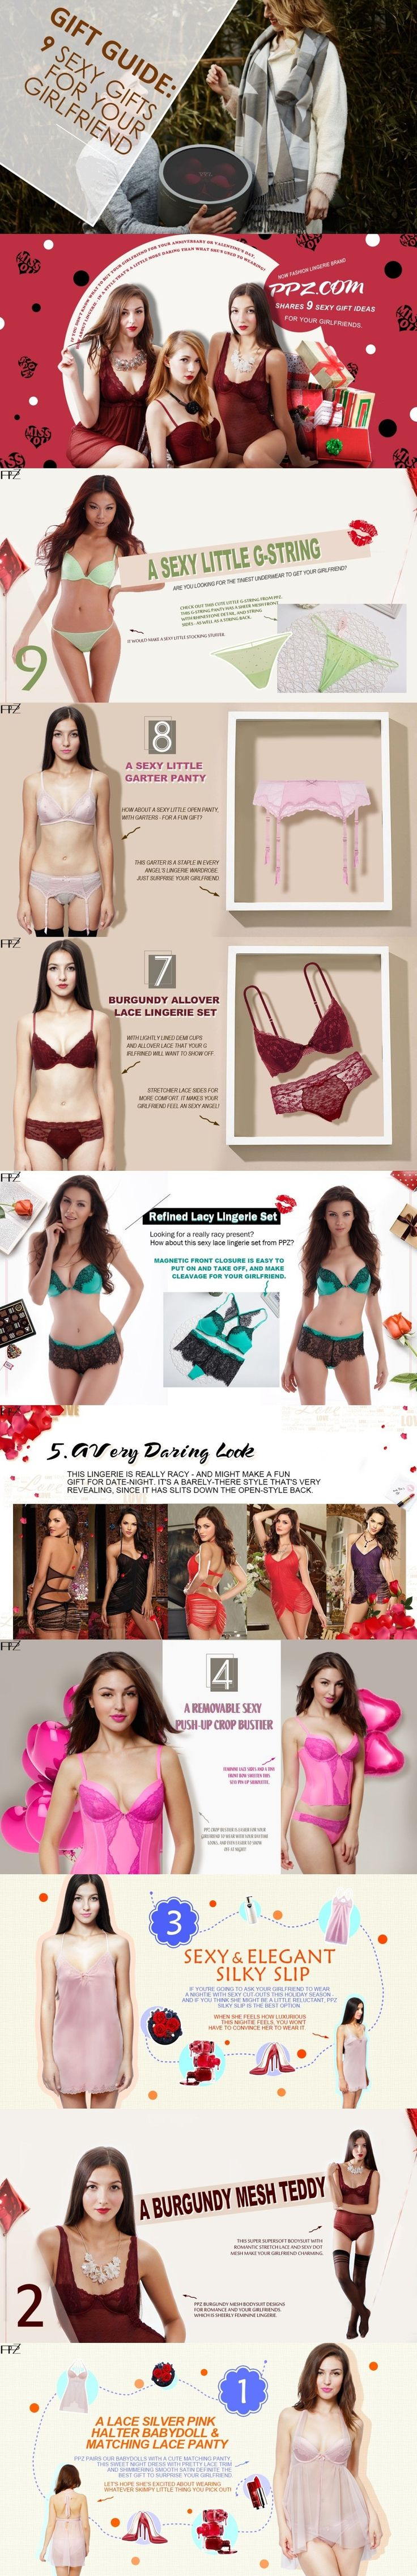 Sexy Gifts For Your Girlfriend